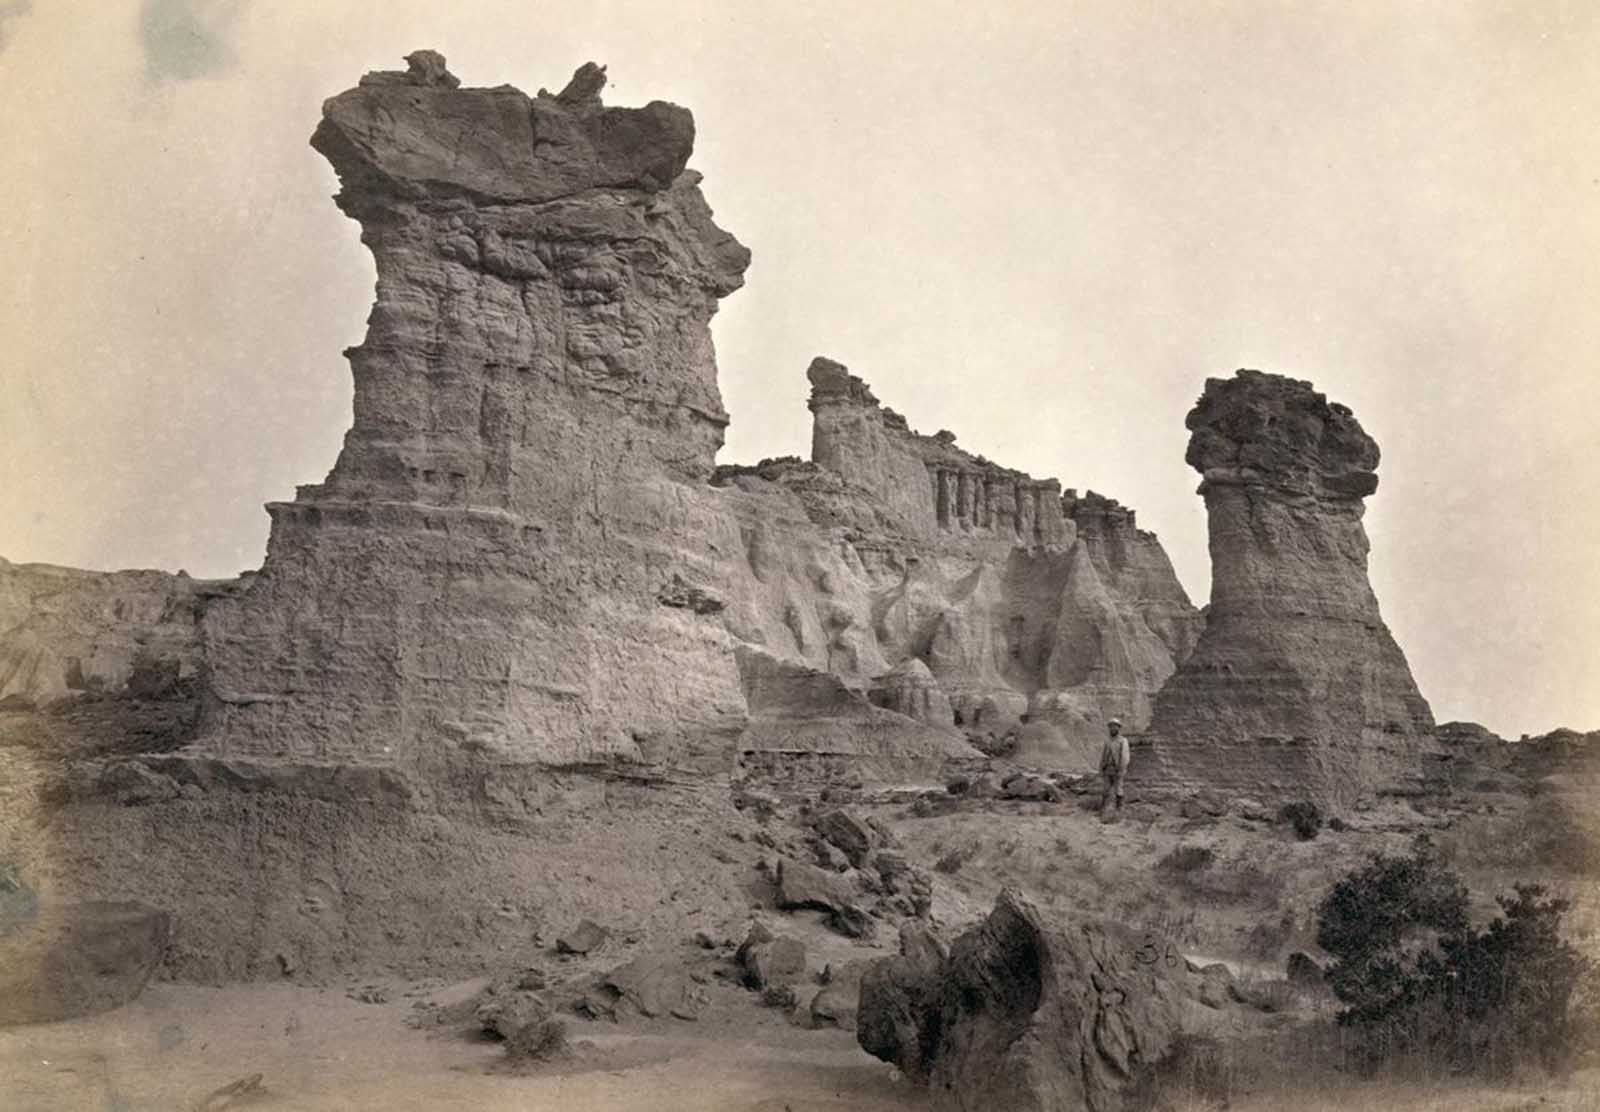 Rock formations in the Washakie Badlands, Wyoming, in 1872. A survey member stands at lower right for scale.